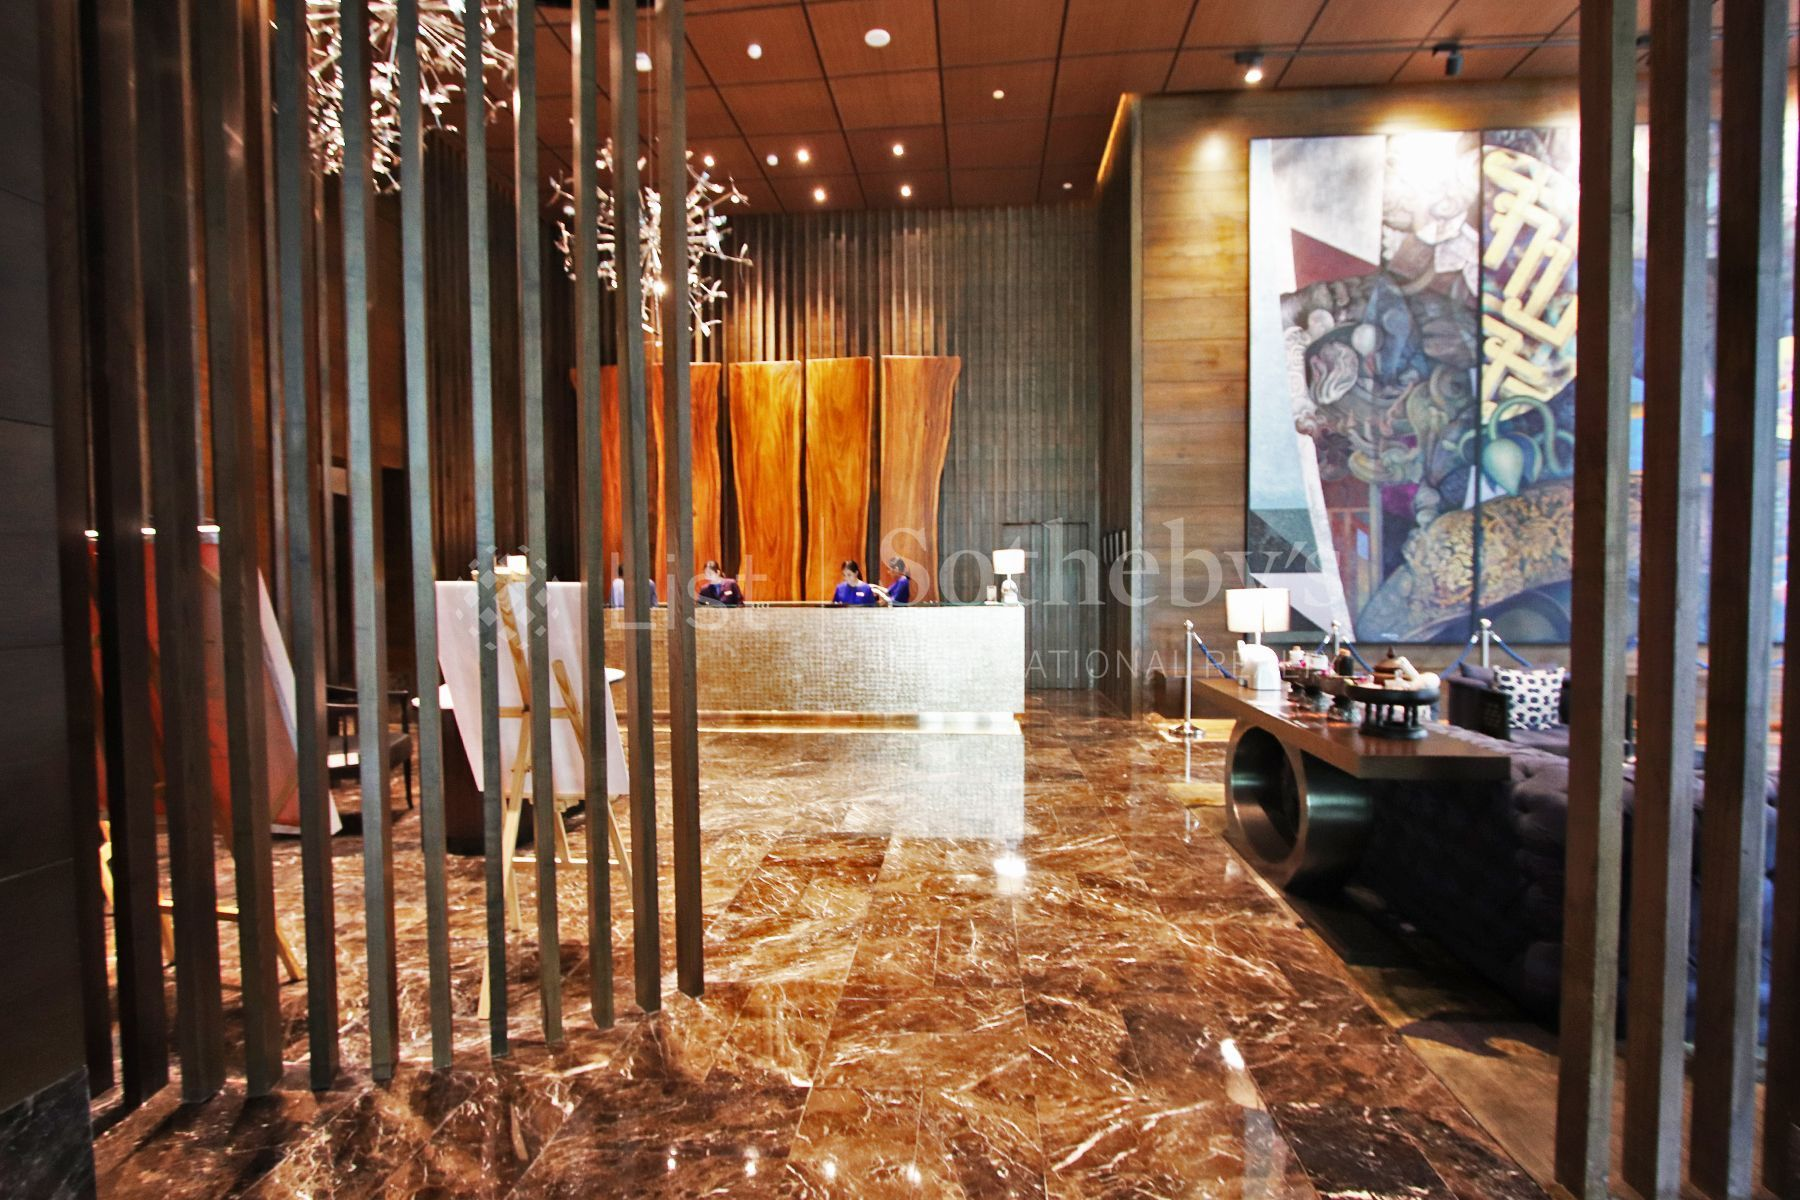 the-pillars-executive-one-bedroom-137-pillars-suites-residences-bangkok 17